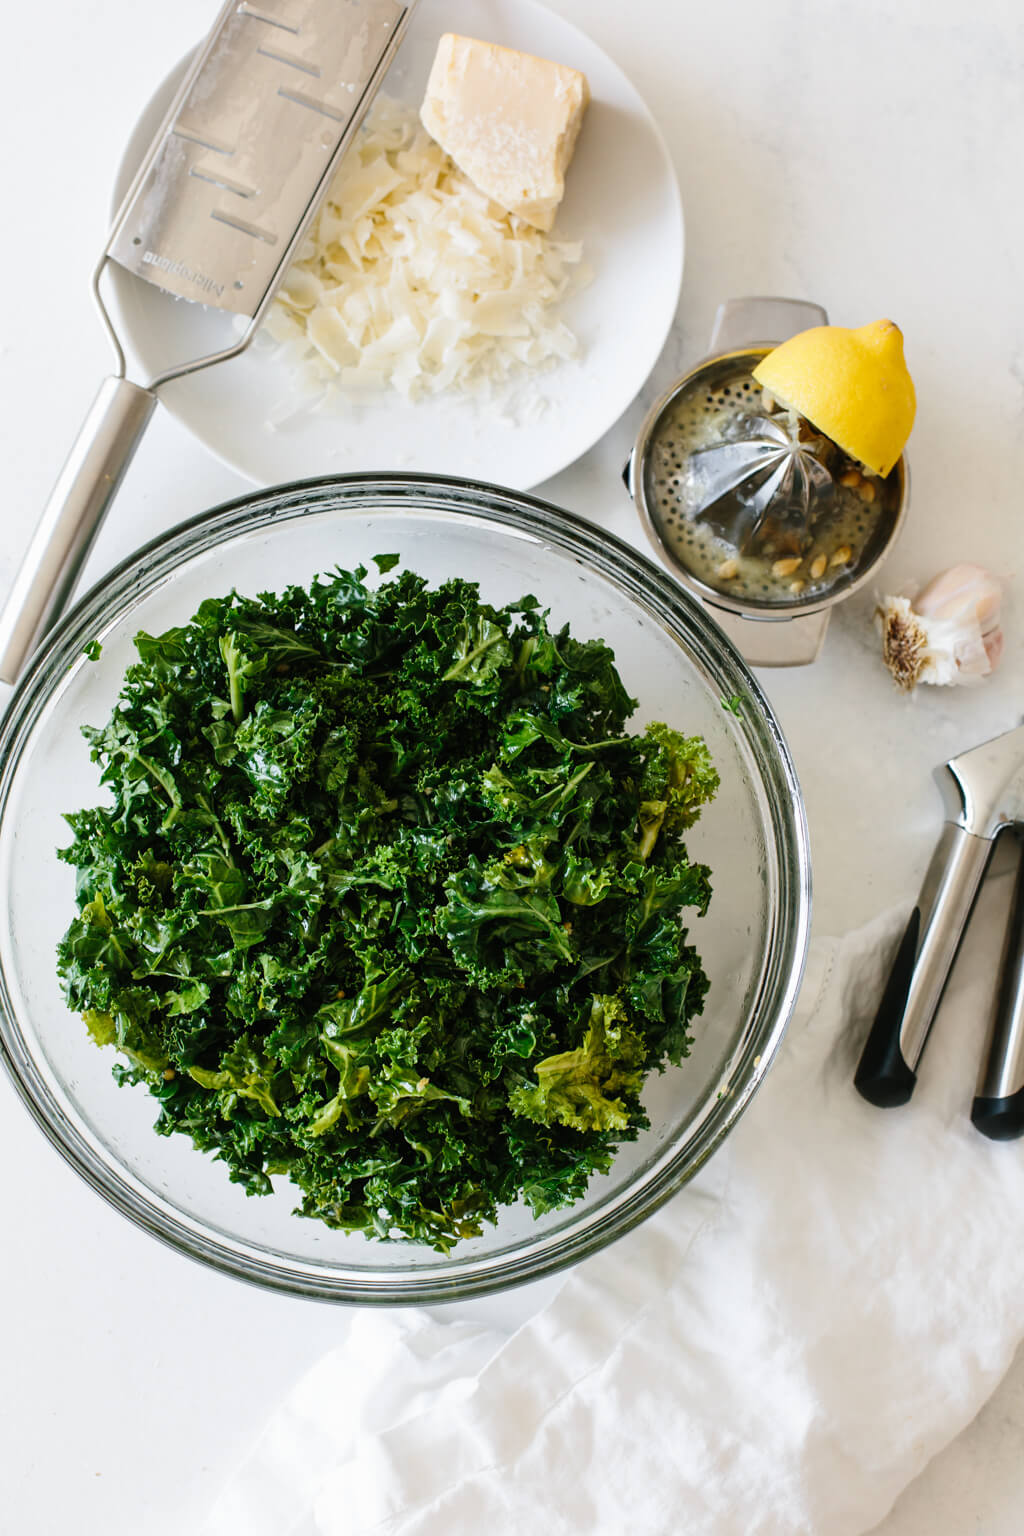 Massaged kale salad ingredients.